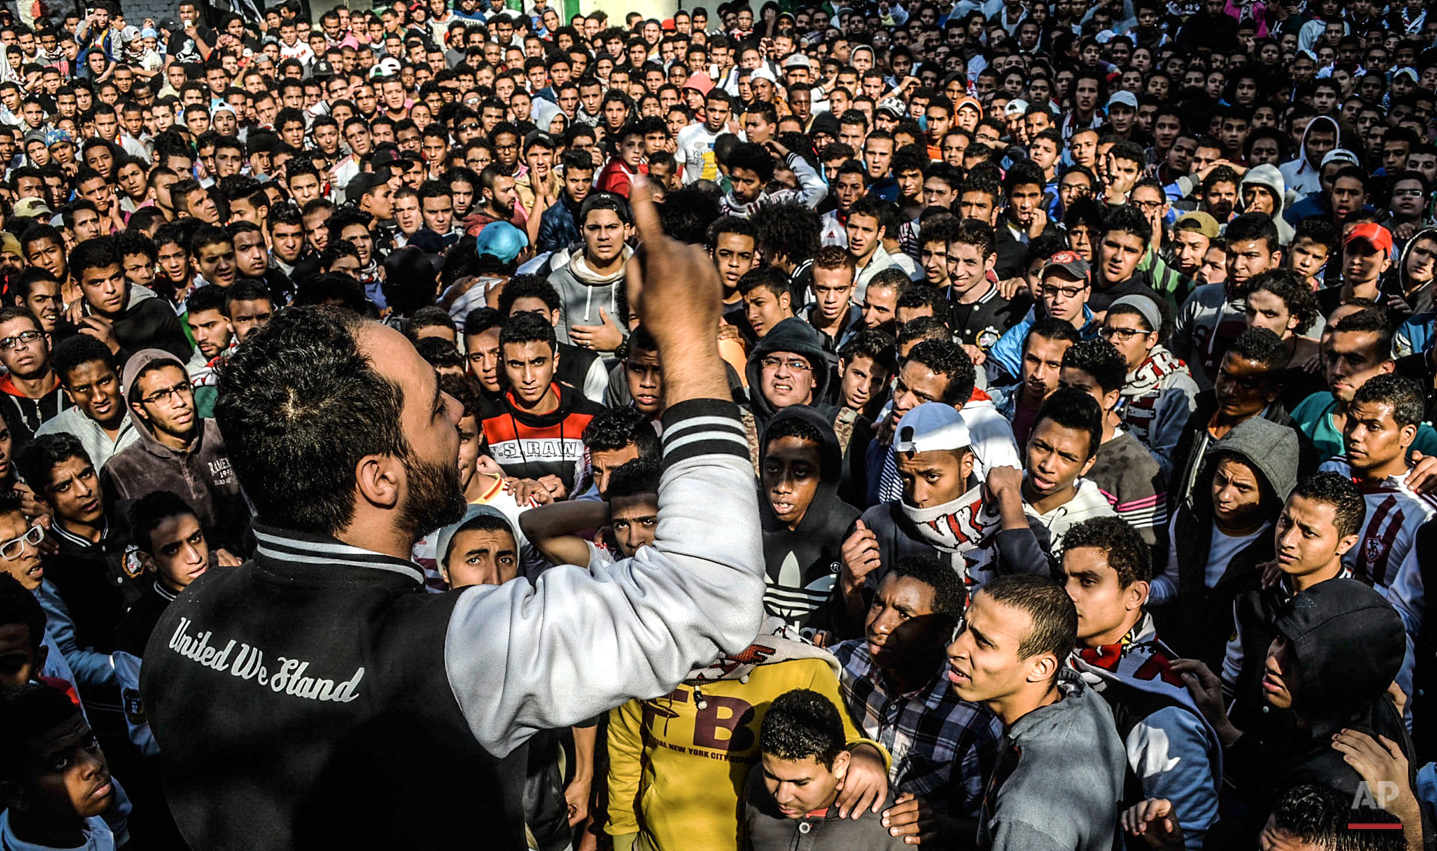 In this March 15, 2014 photo, Zamalek football clubís hardcore fan group Ultras White Knights (UWK) chant slogans during a protest against police standing guard at stadiums during all matches, in Cairo, Egypt. Often providing muscle at protests, UWK also directed demonstrators and led chants. They were considered one of the most organized movements in Egypt after the Muslim Brotherhood, which the government outlawed as a terrorist organization following the 2013 military overthrow of Islamist President Mohammed Morsi. (AP Photo/Mohammed El Raai)